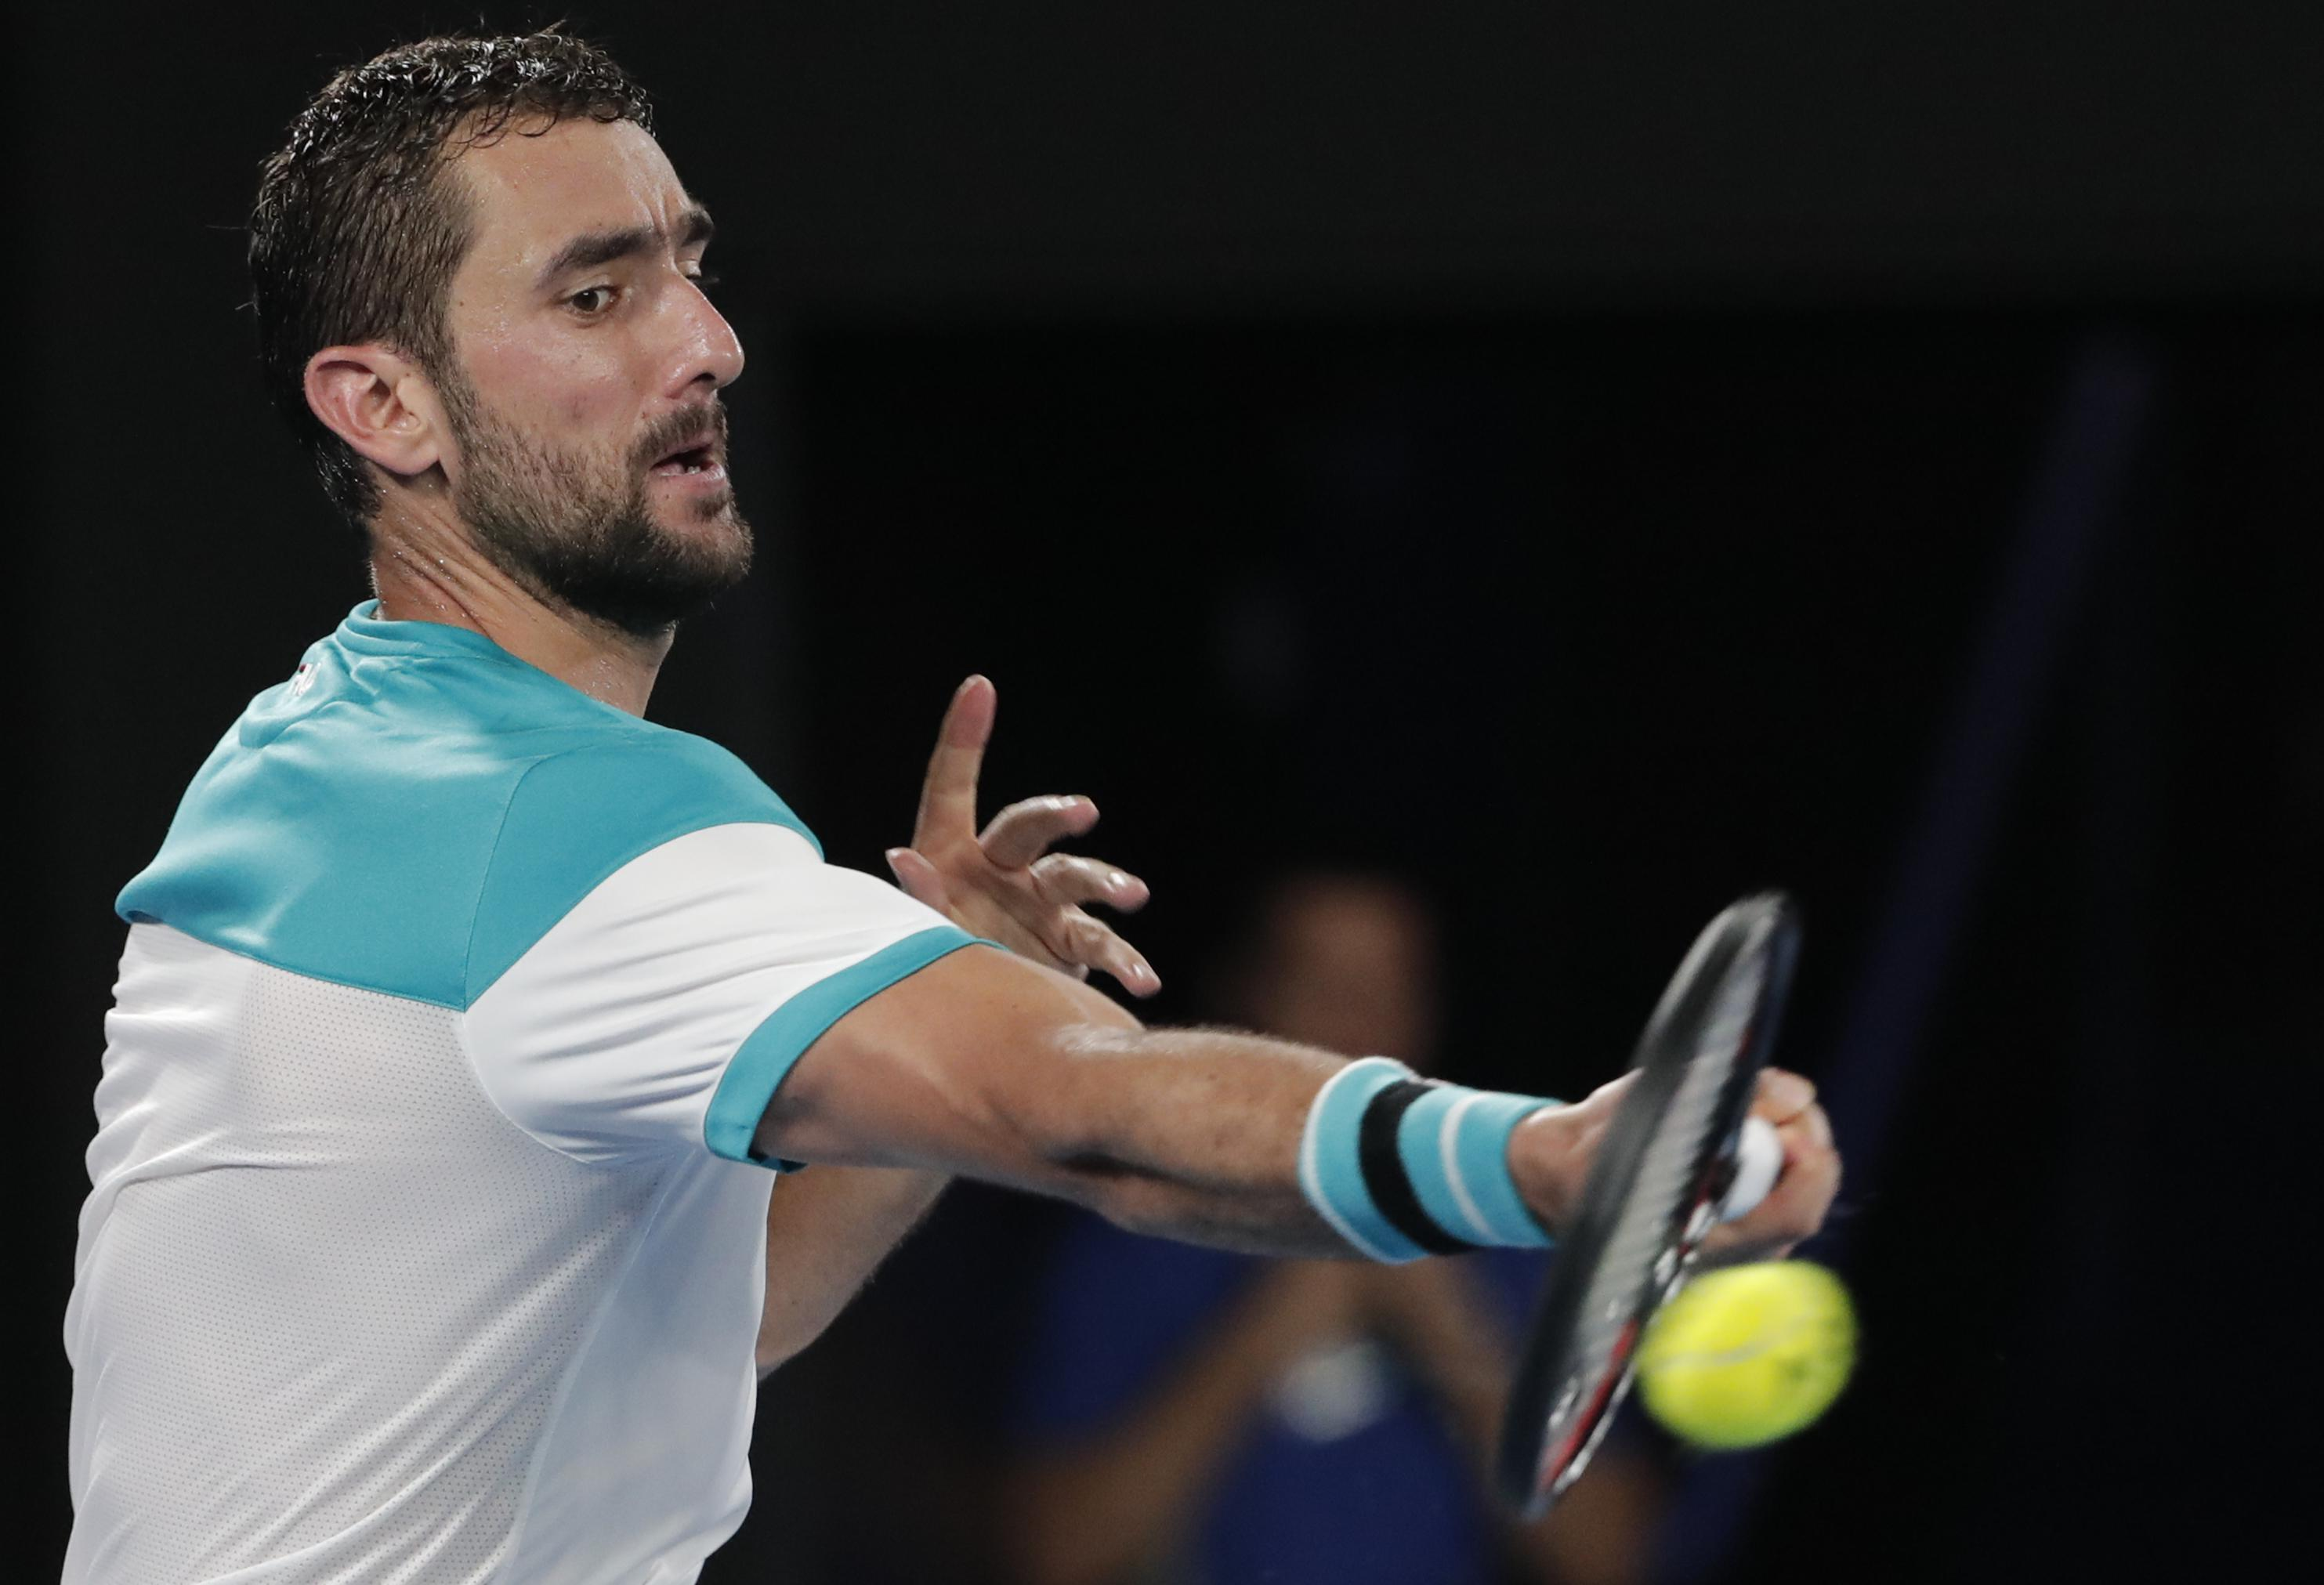 Marin Cilic beat Kyle Edmund in a one-sided affair winning 6-2, 7-6 (7-4), 6-2